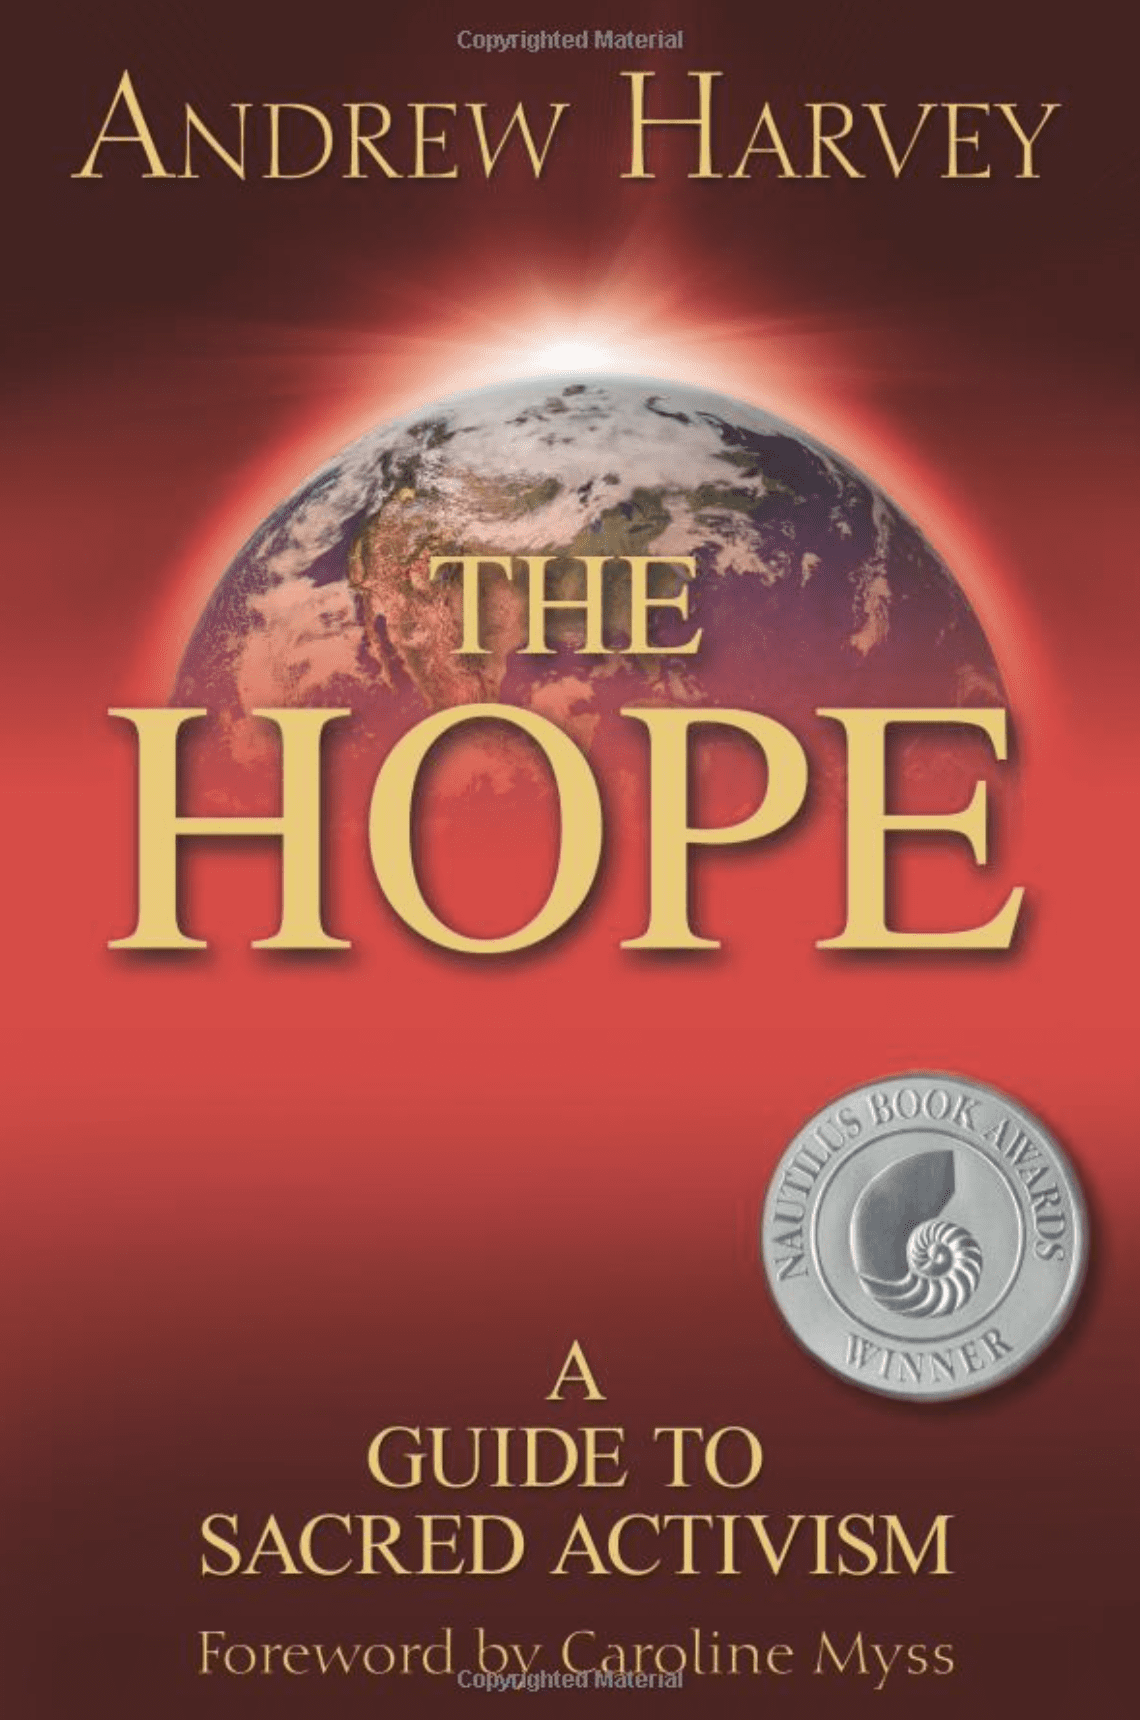 The Hope: A Guide to Sacred Activism, Andrew Harvey Cover Photo